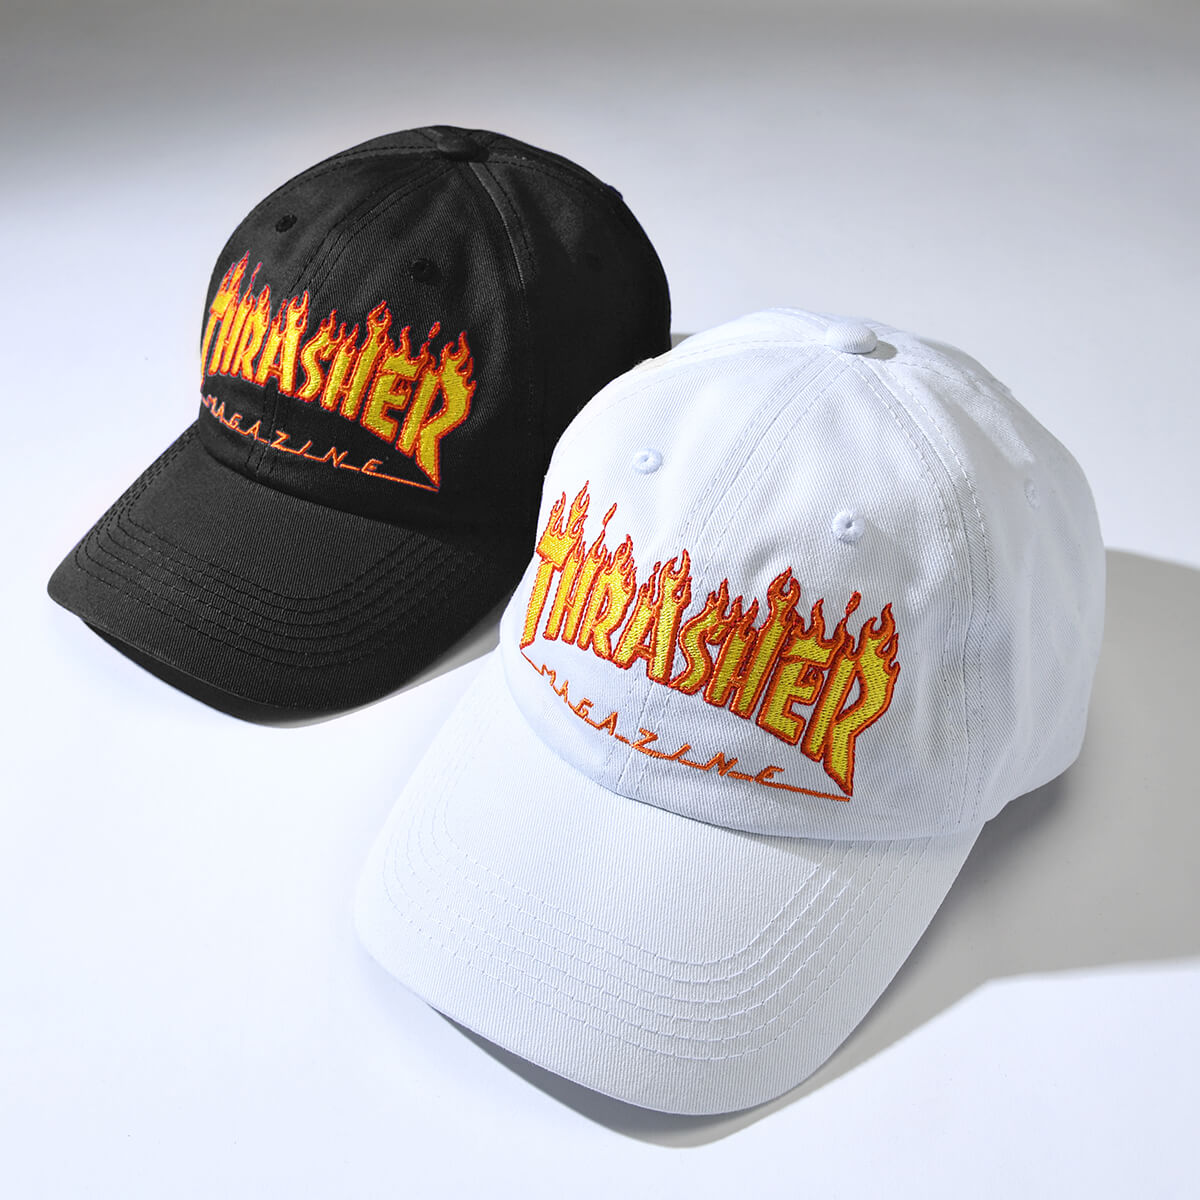 THRASHER HATS &MORE-SHOP HATS